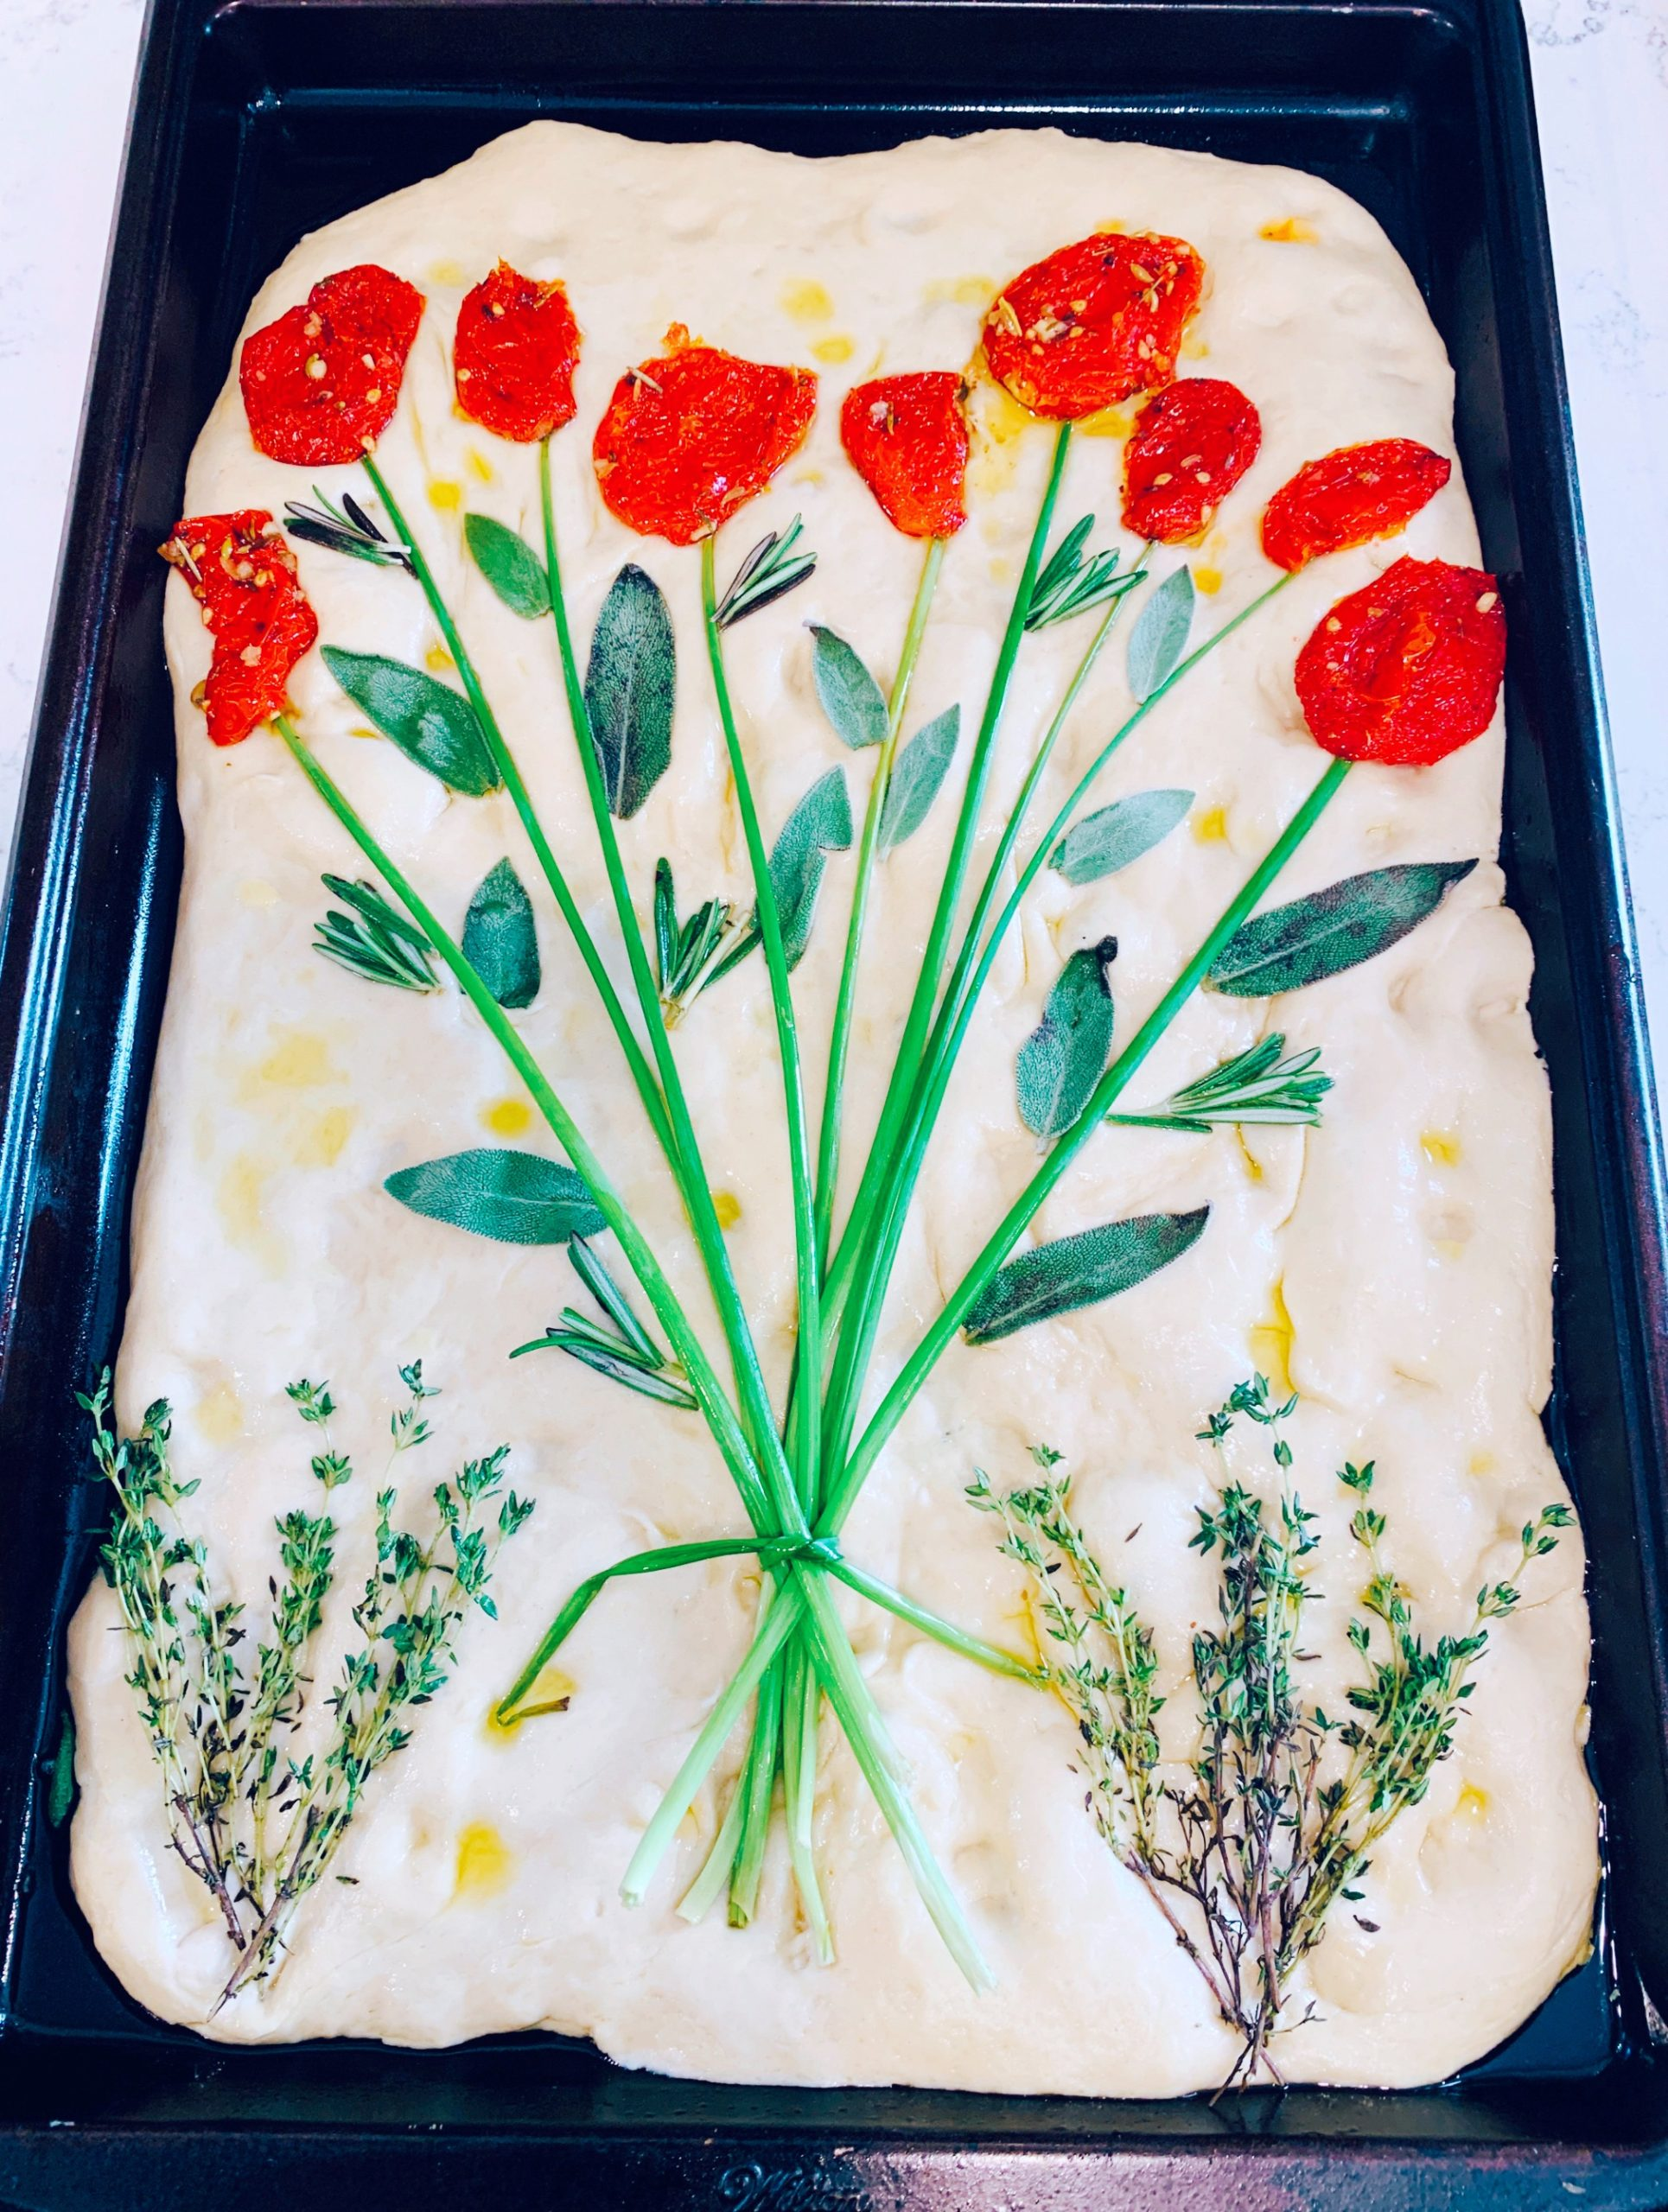 Focaccia Bread Art Ingredients For A Masterpiece Pretty Little Social